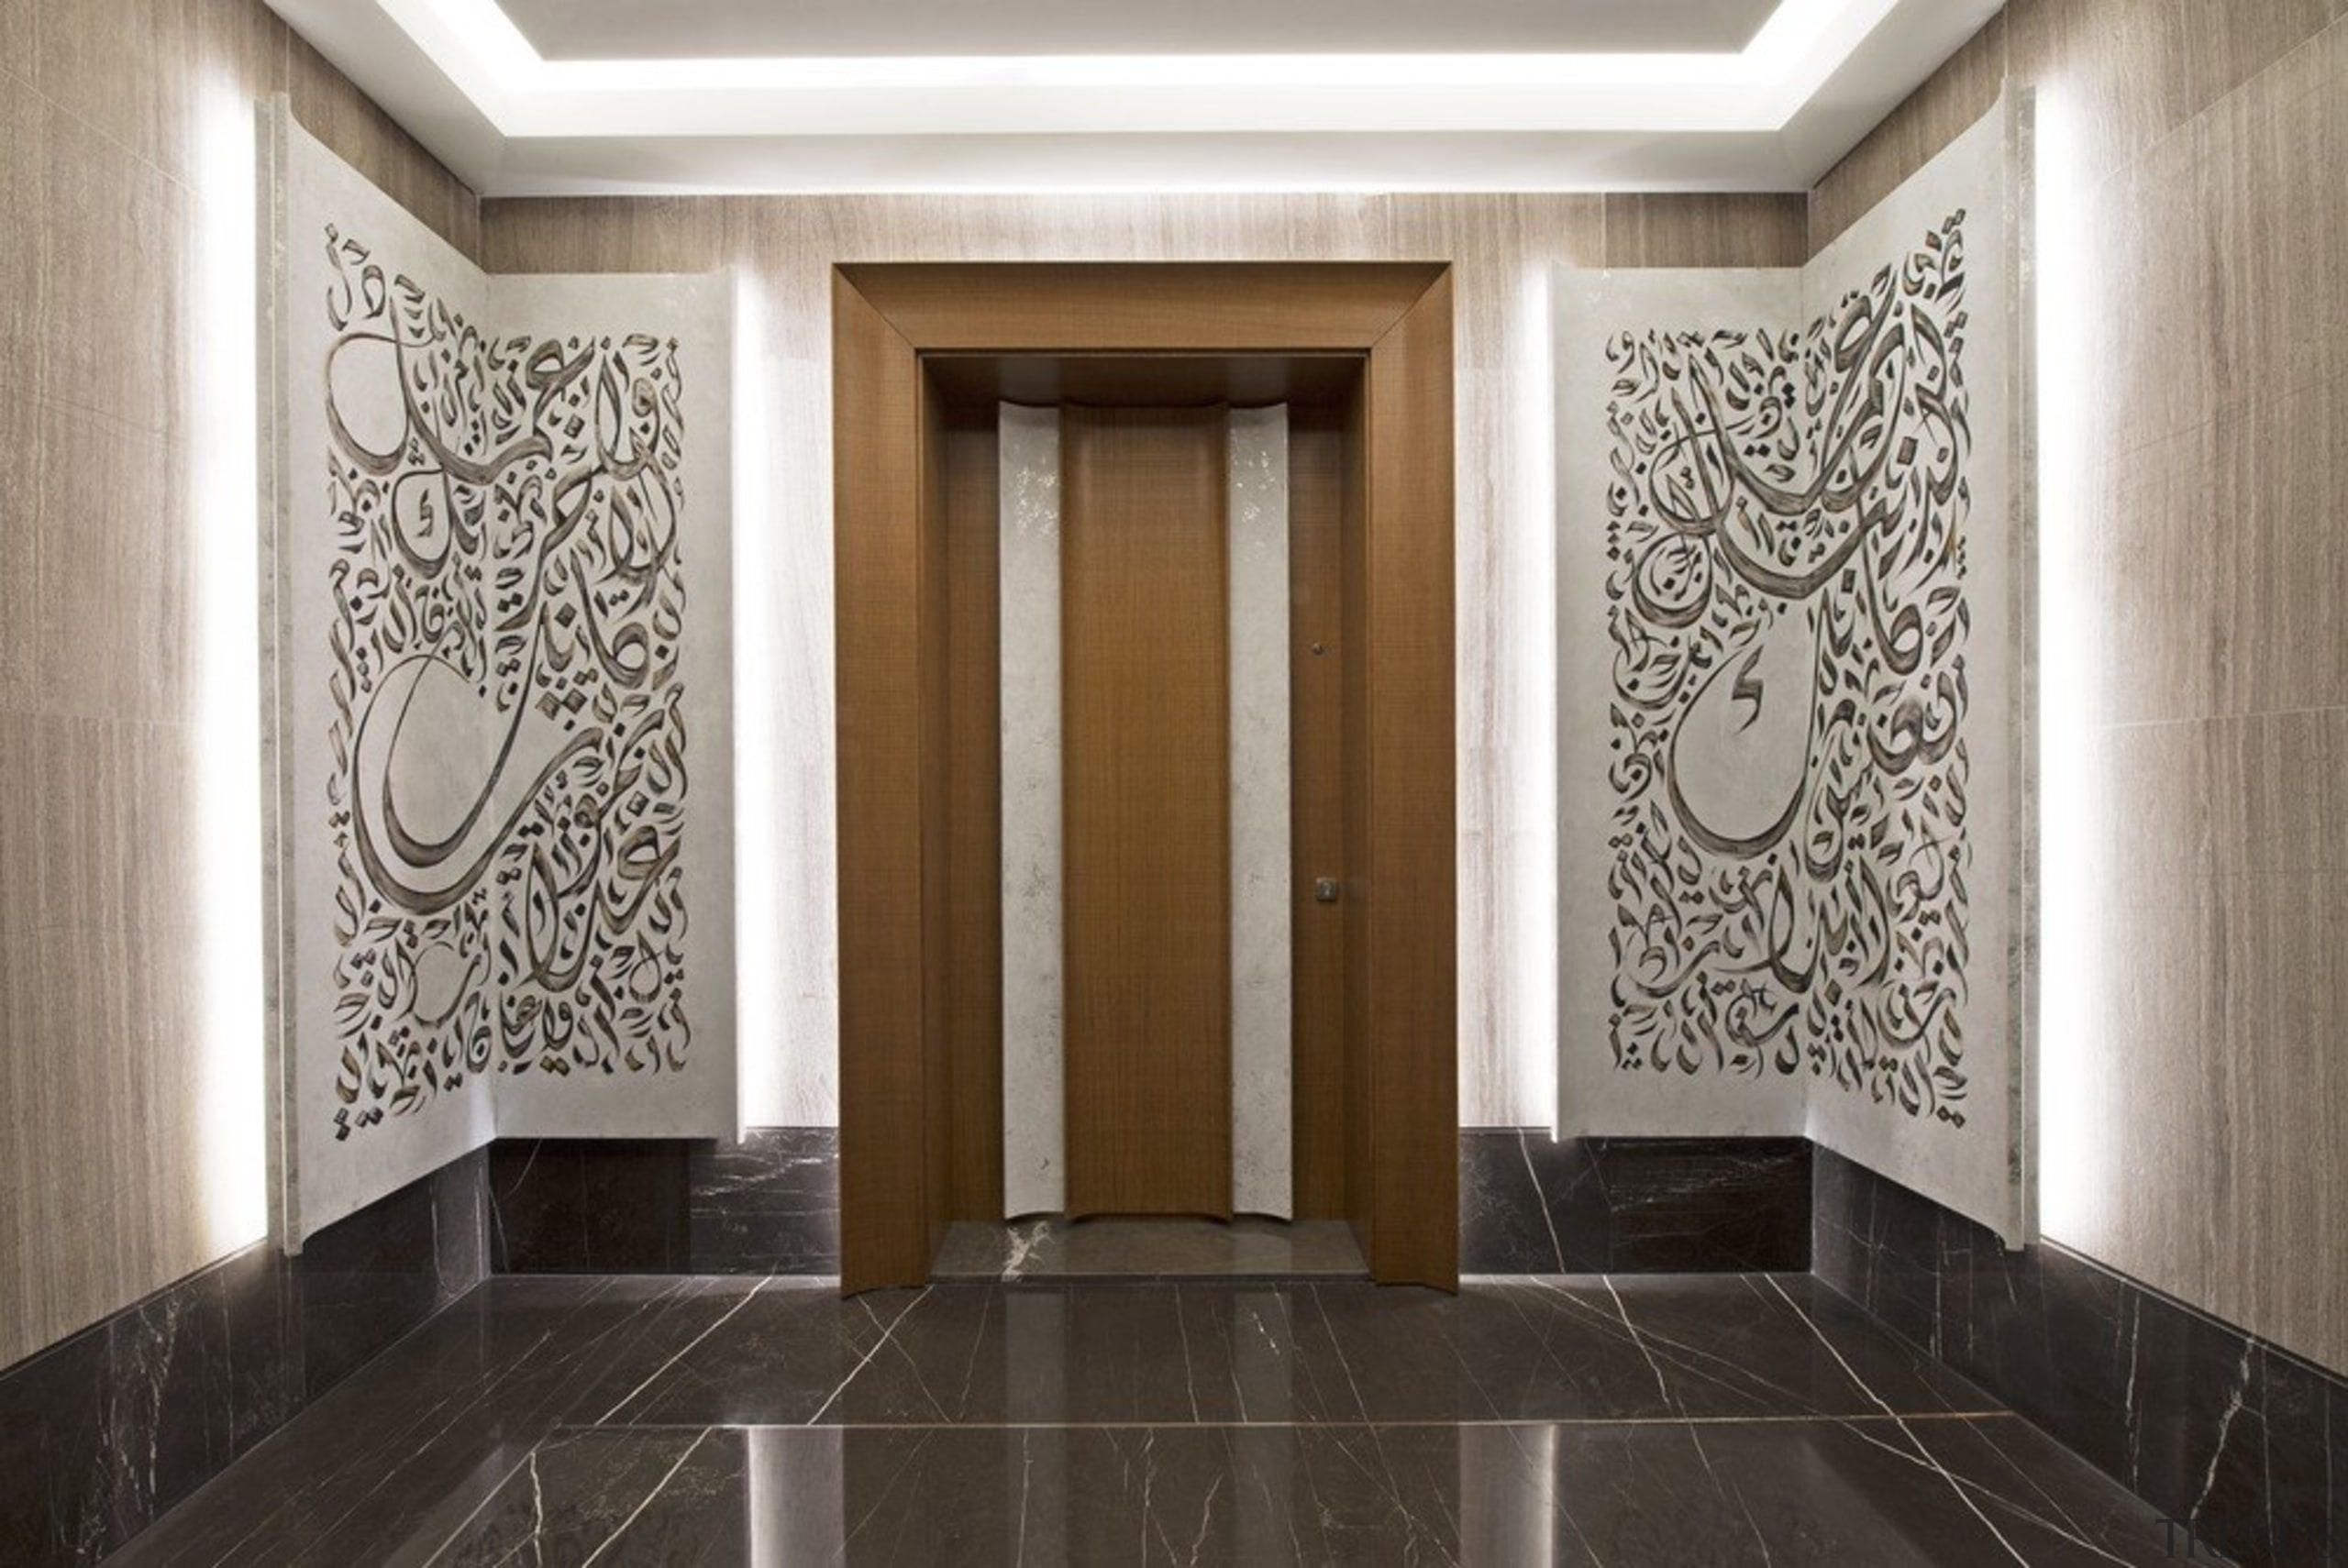 The entrance includes a private elevator area where architecture, building, ceiling, door, floor, flooring, hall, house, interior design, lobby, molding, plaster, property, room, tile, wall, wallpaper, gray